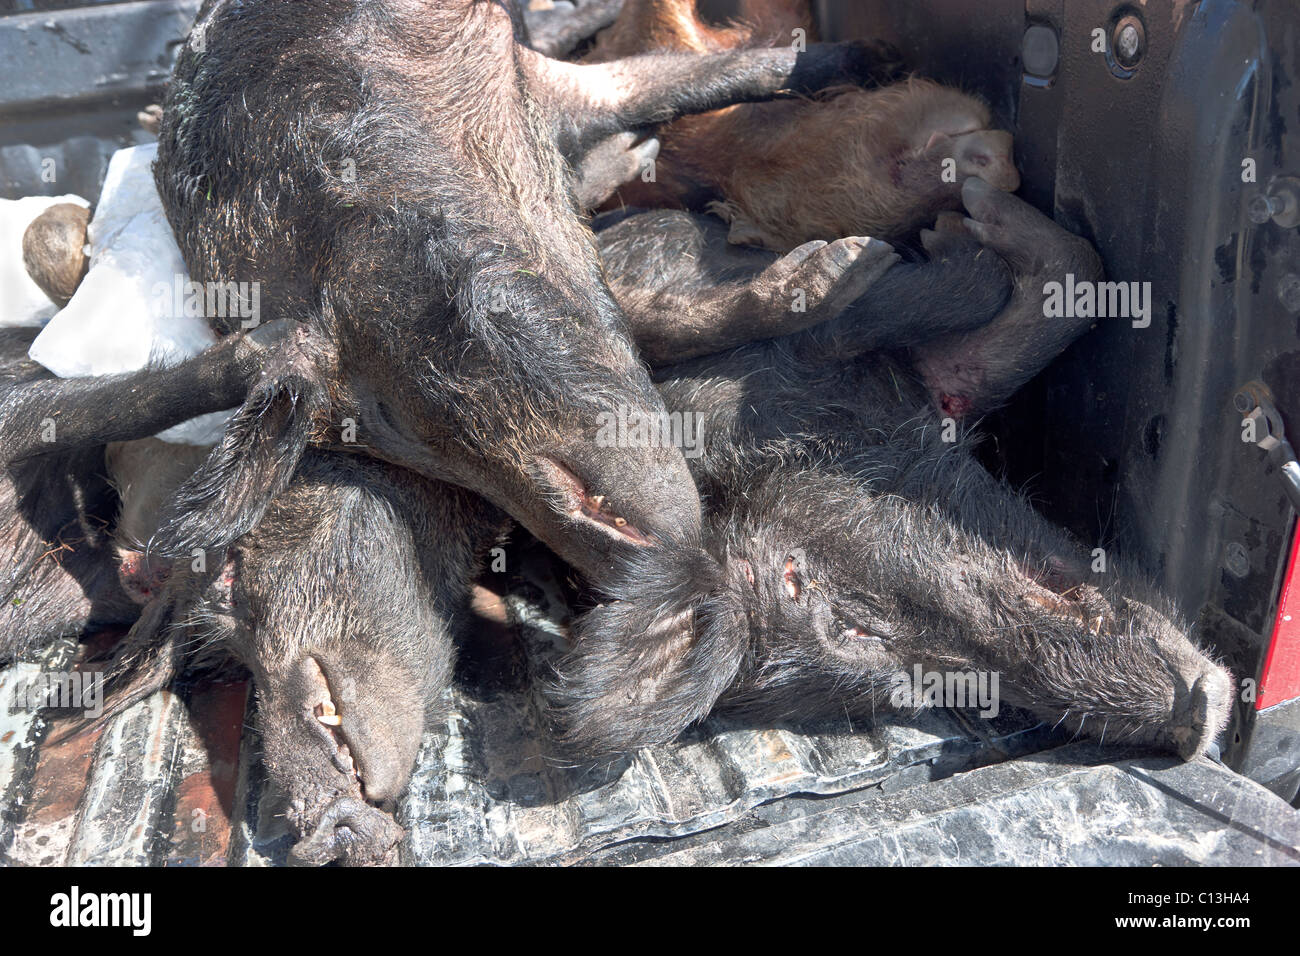 Feral hogs, bagged, - Stock Image